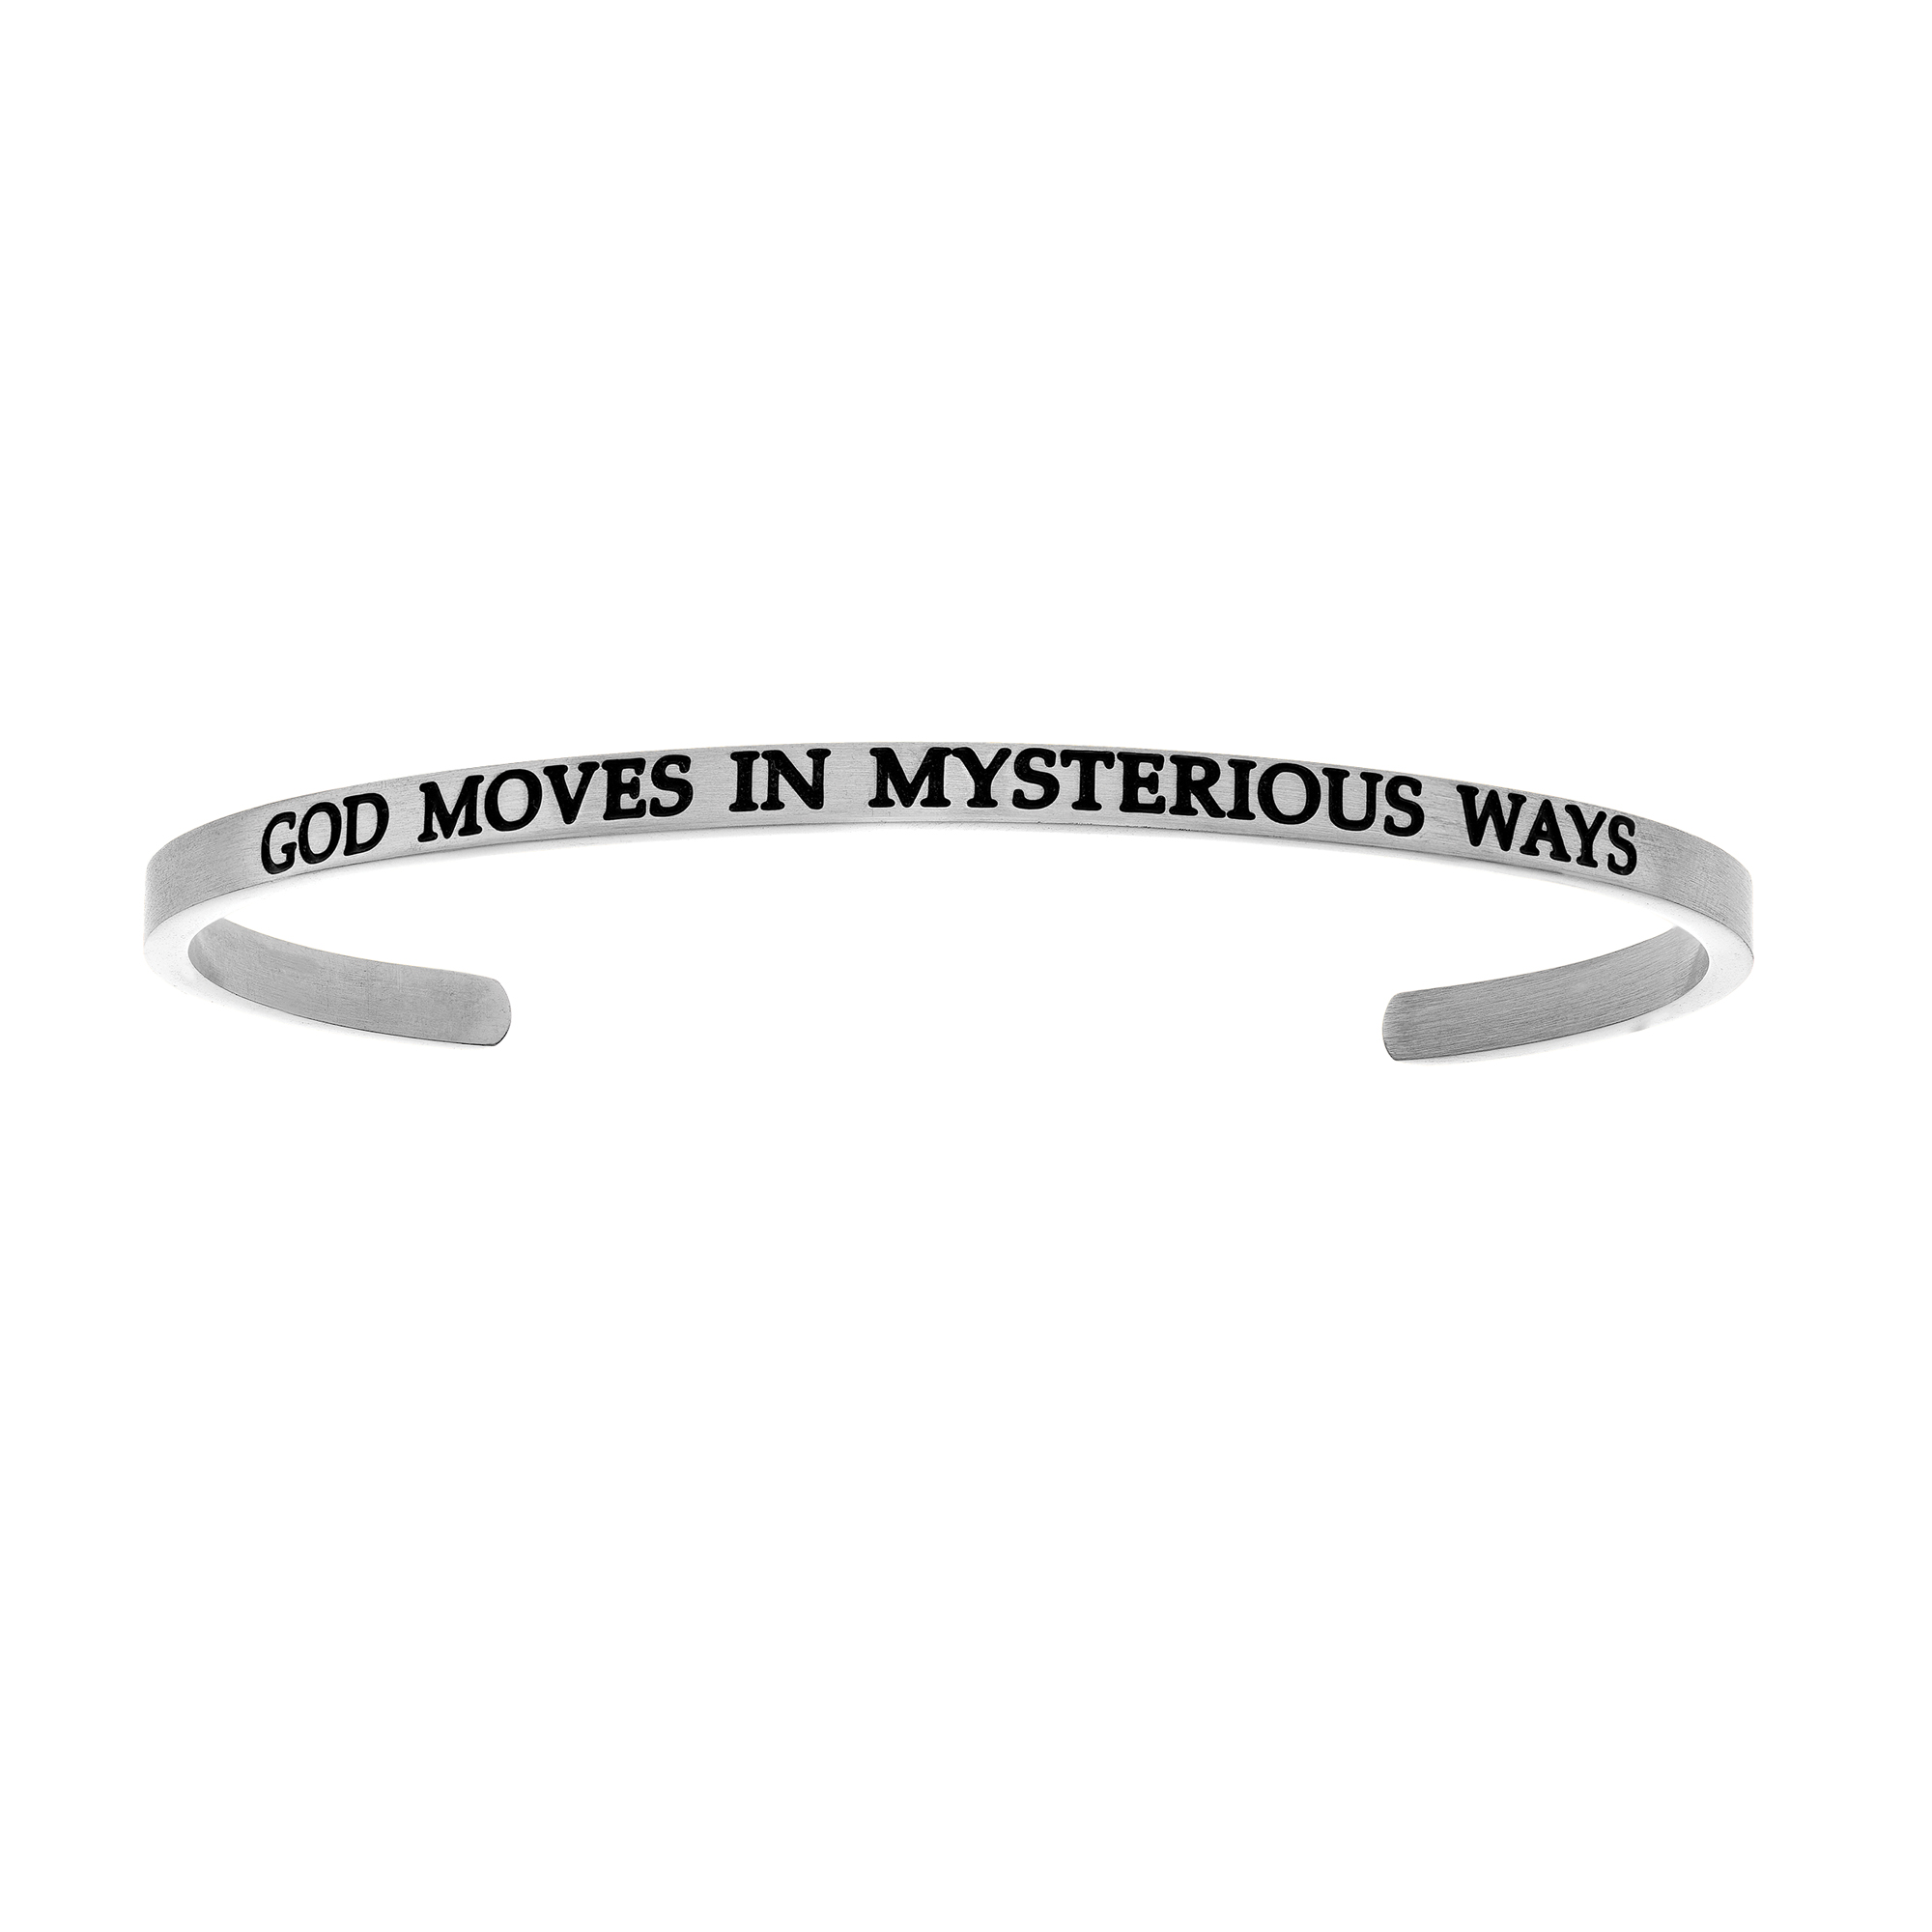 Intuitions Stainless Steel GOD MOVES IN MYSTERIOUS WAYS Diamond Accent Cuff  Bangle Bracelet, 7  Each of these bracelets carries a personal message of inspiration, spirituality or just plain fun. Meant to be worn alone or stacked together for a smart, contemporary look, they're a great self-purchase or as a gift for family or friends. Intuitions are made of stainless steel and come in two styles standard cuff or friendship and fit practically any wrist. Intuitions Jewelry makes the difference in your daily life by designing and creating bracelets and bangles with motivational quotes to inspire you and your loved ones. Giving back $.25 of each bracelet to BABY2BABY